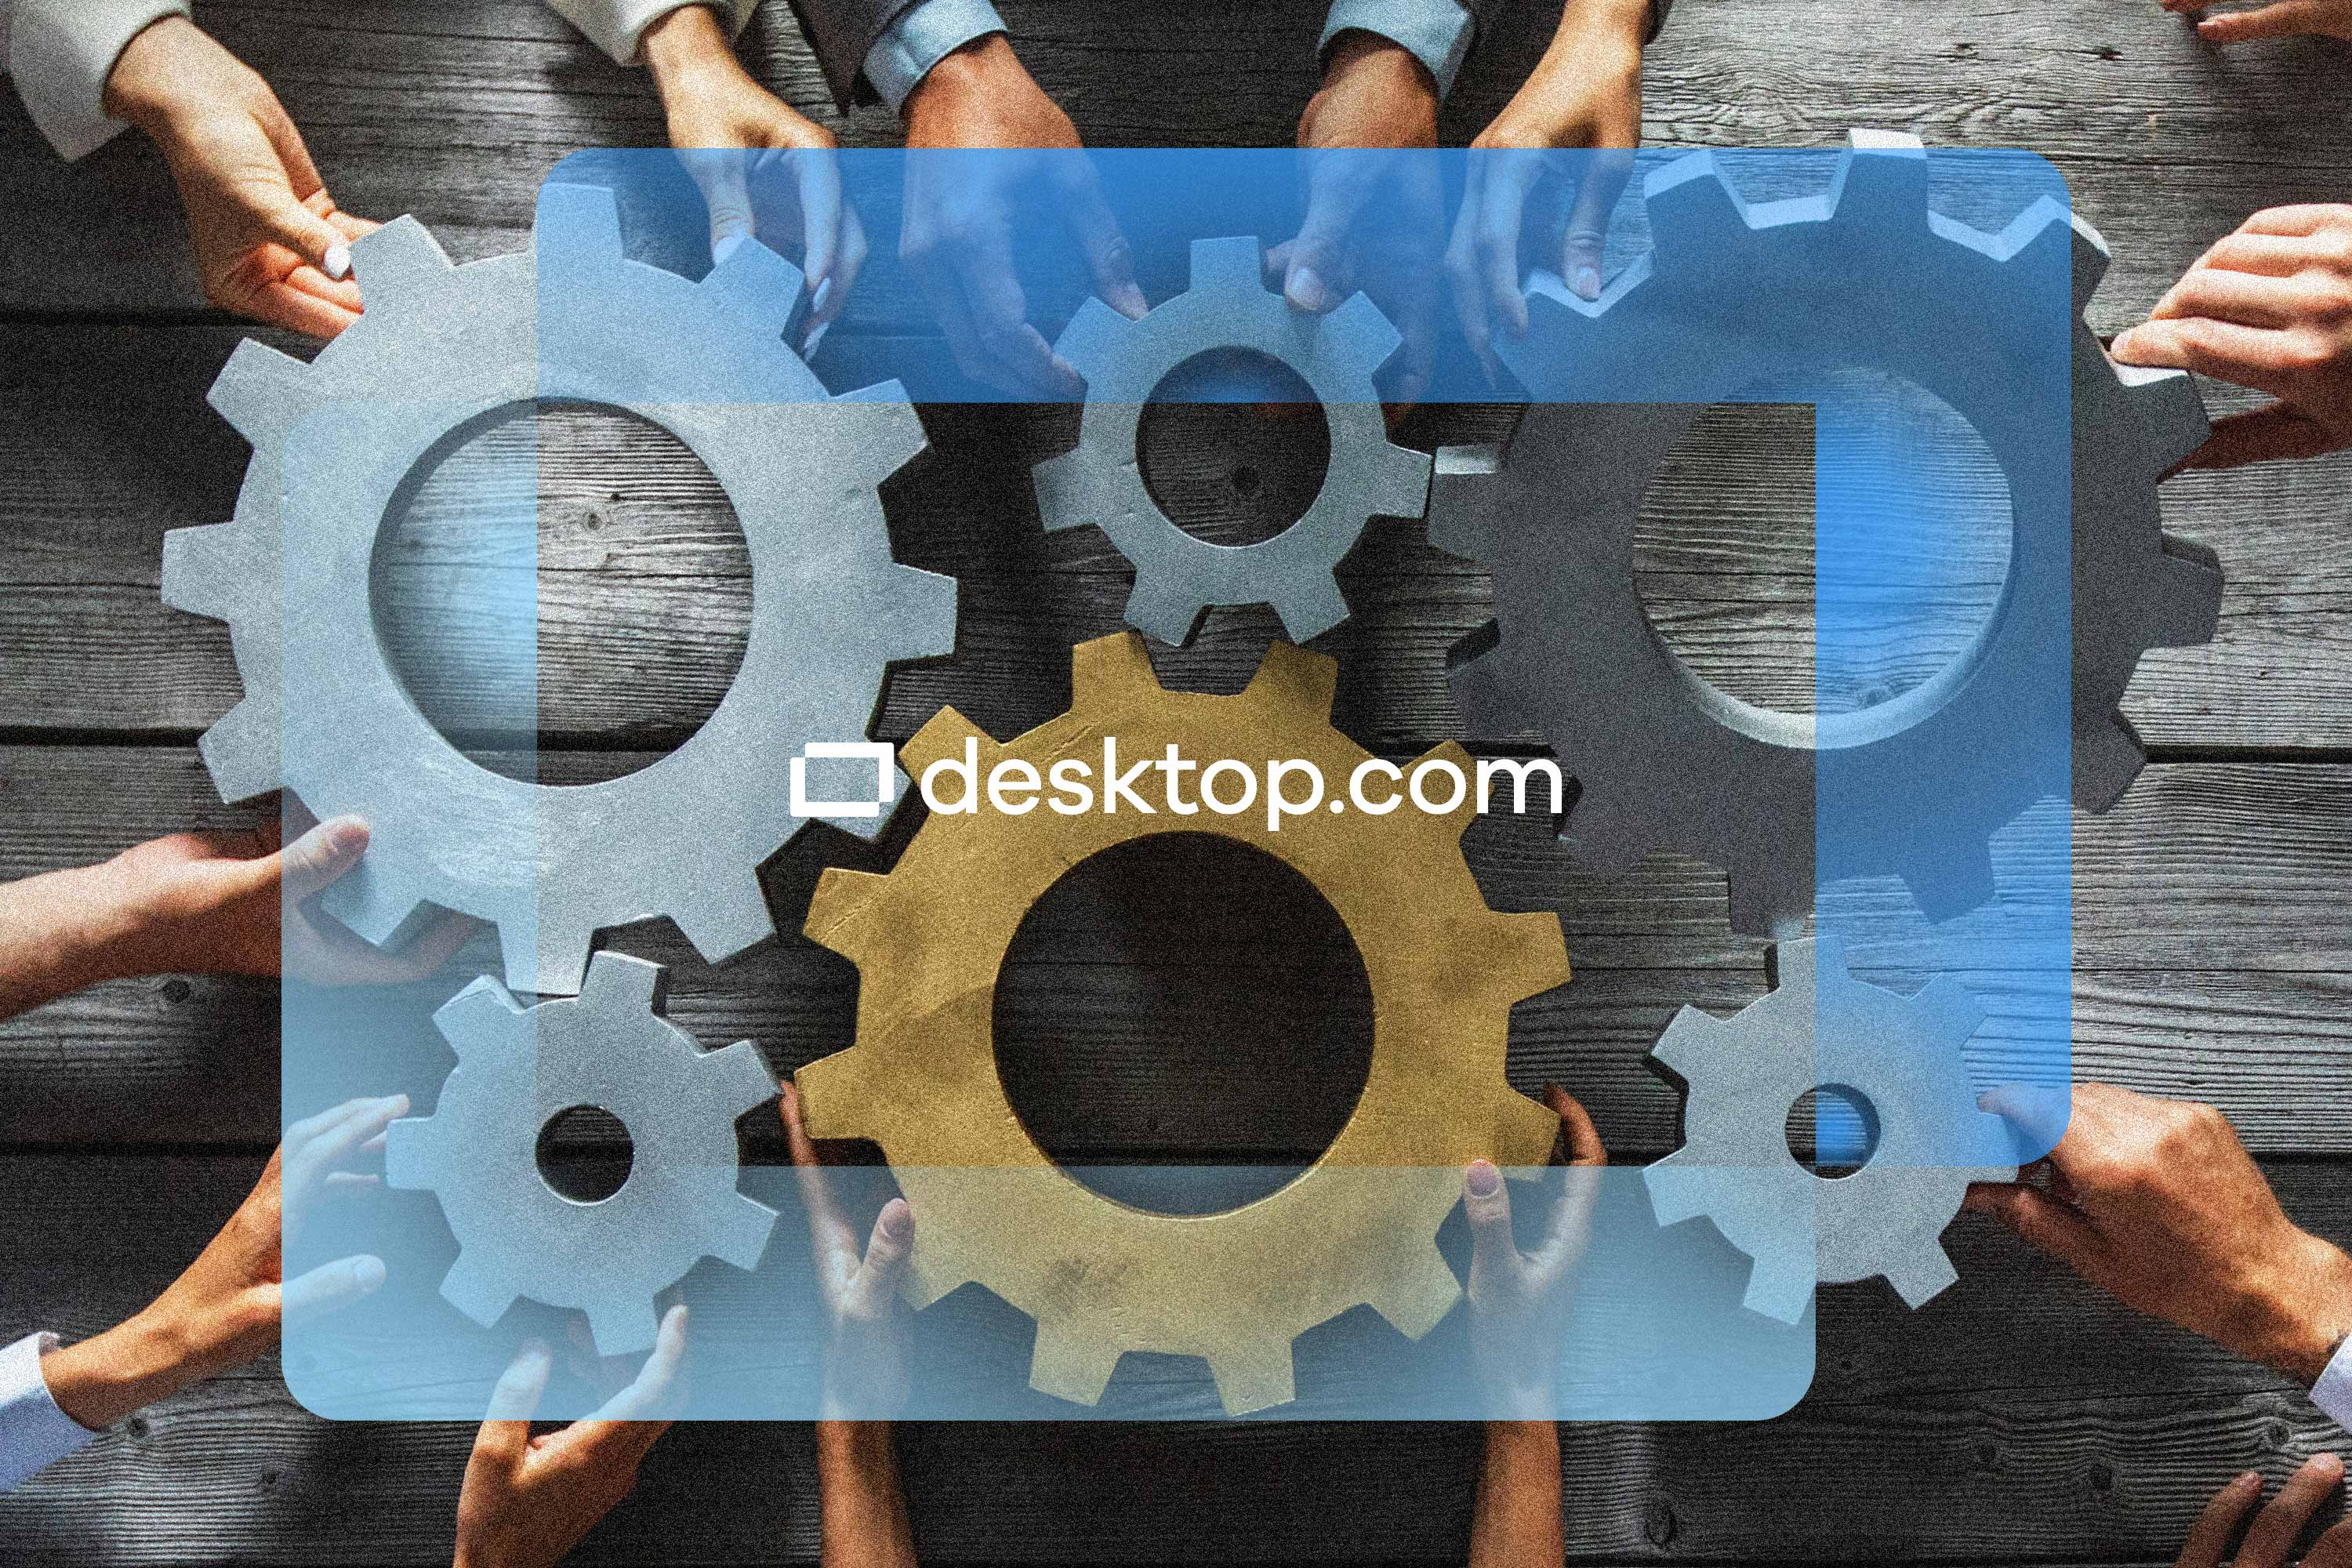 Hands handle gears on a wooden table with the desktop.com logo superimposed in the front